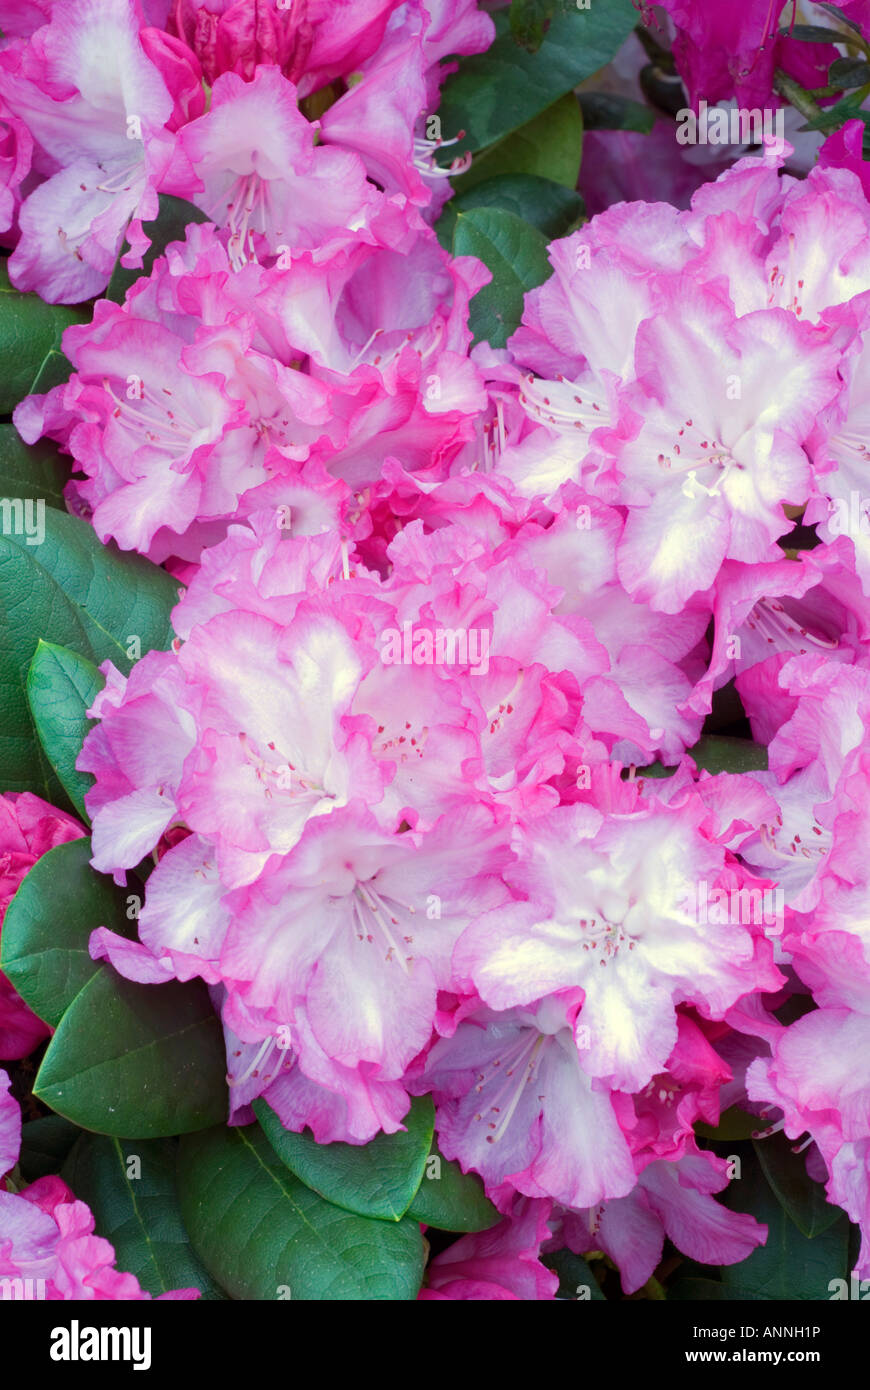 Rhododendron Blurettia Picotee Pink White Closeup Close Up Flowers